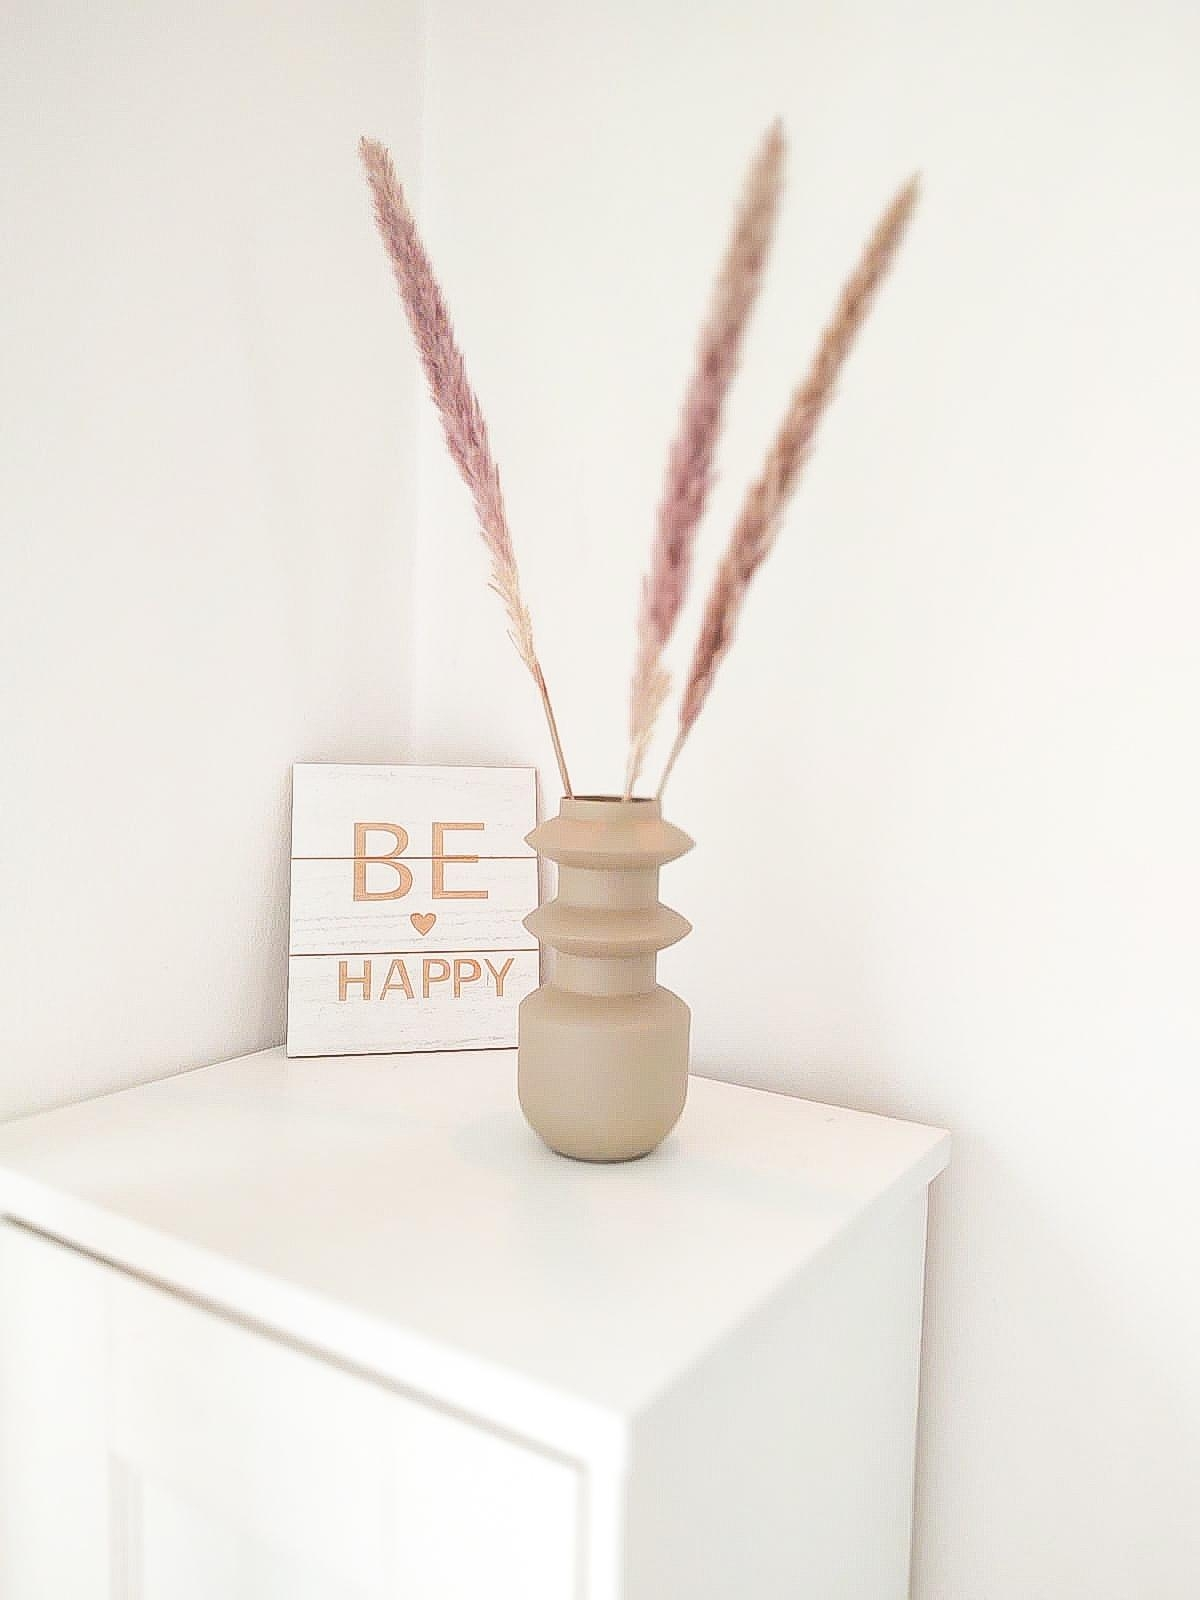 Be happy – no more to say 